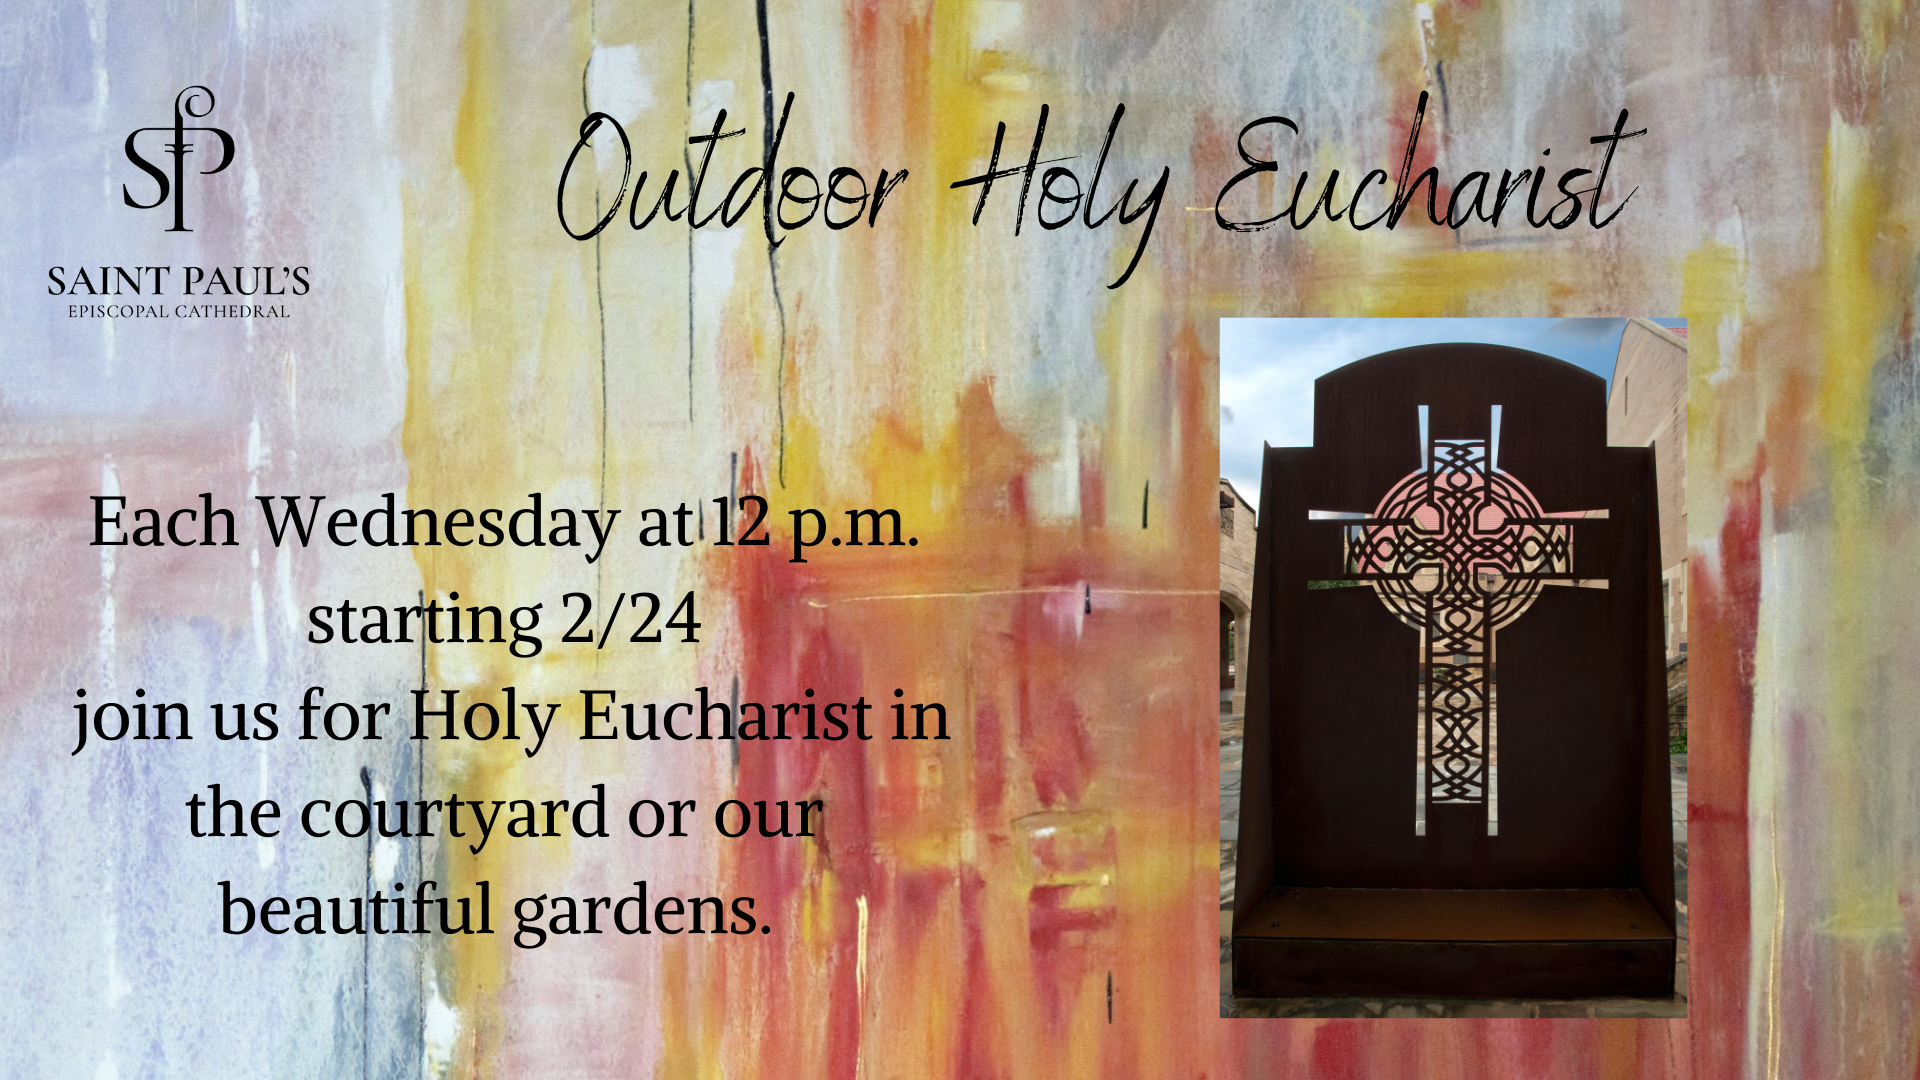 outdoor-holy-eucharist-1_714